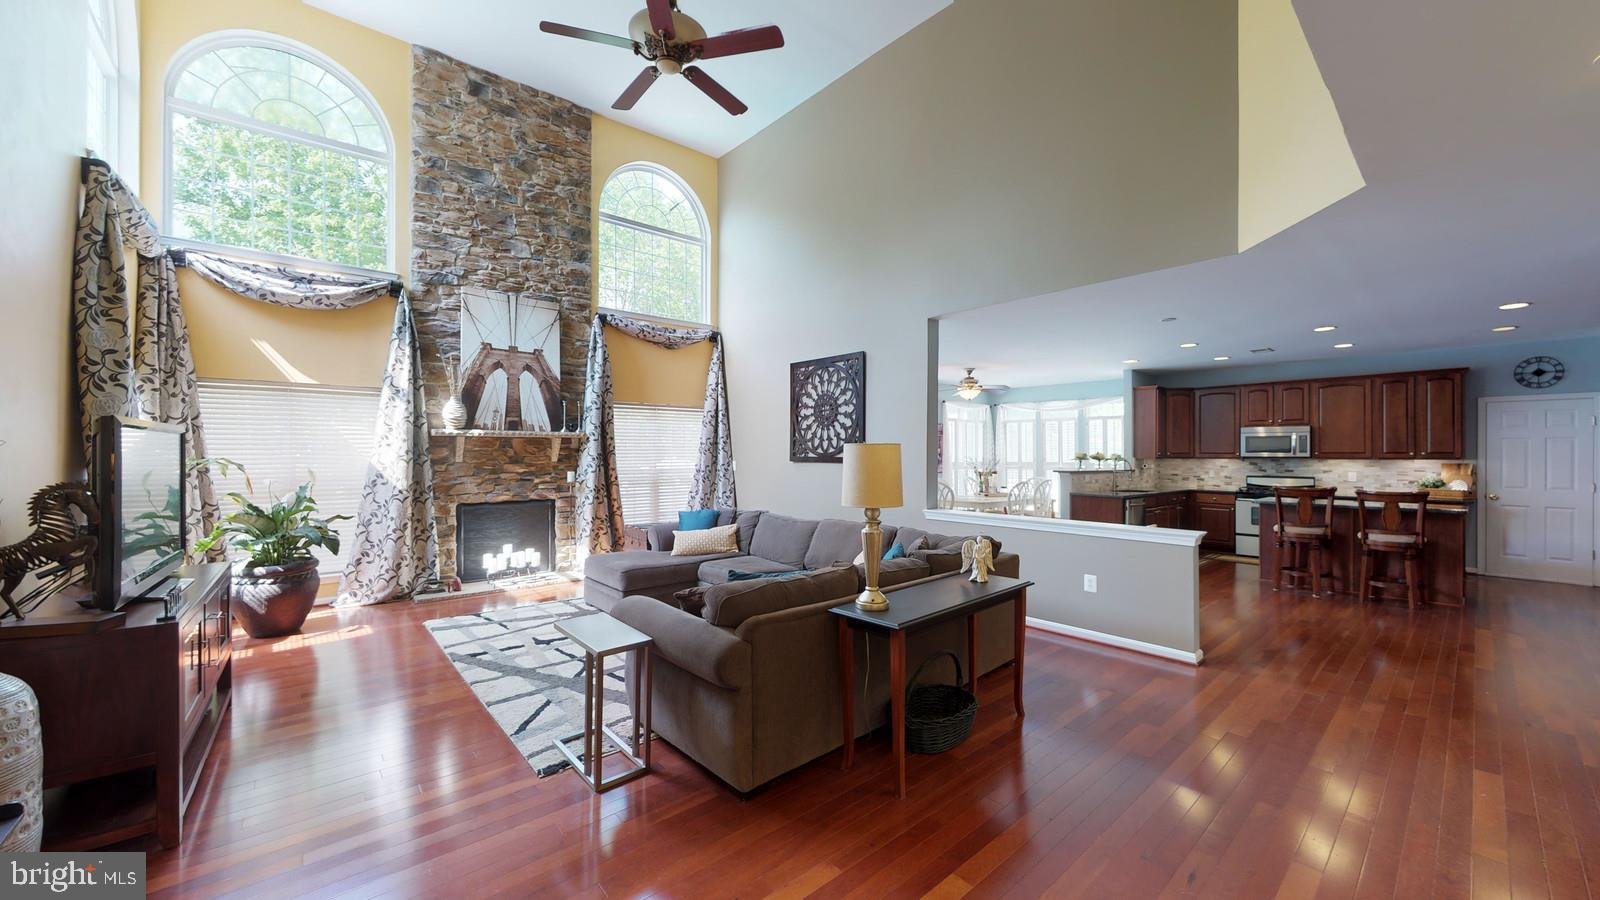 8456 HESSIAN HILL COURT, BRISTOW, VA 20136